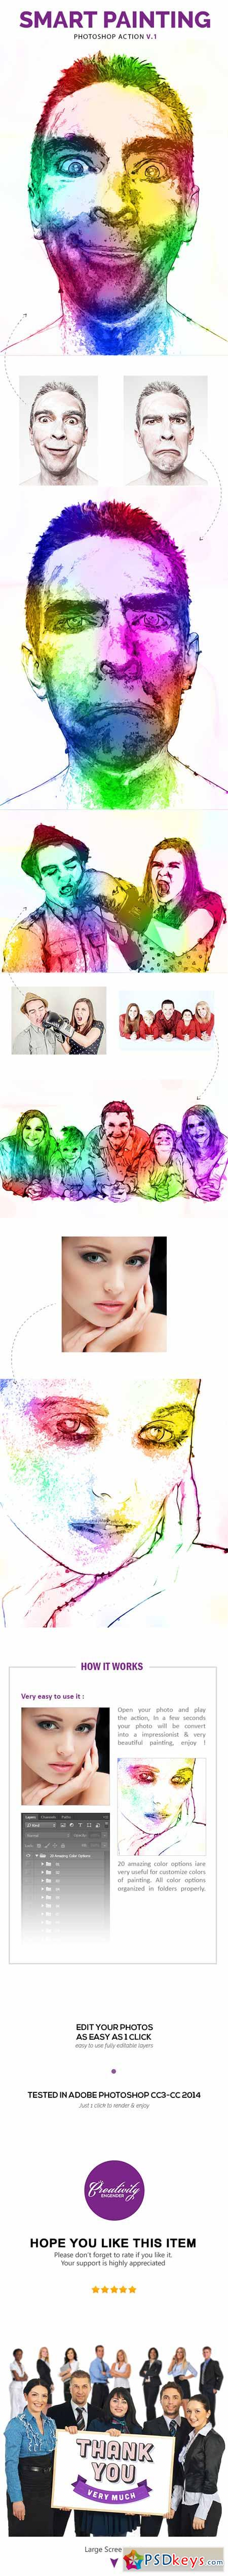 Smart Painting Vol.1 - Photoshop Action 11459711